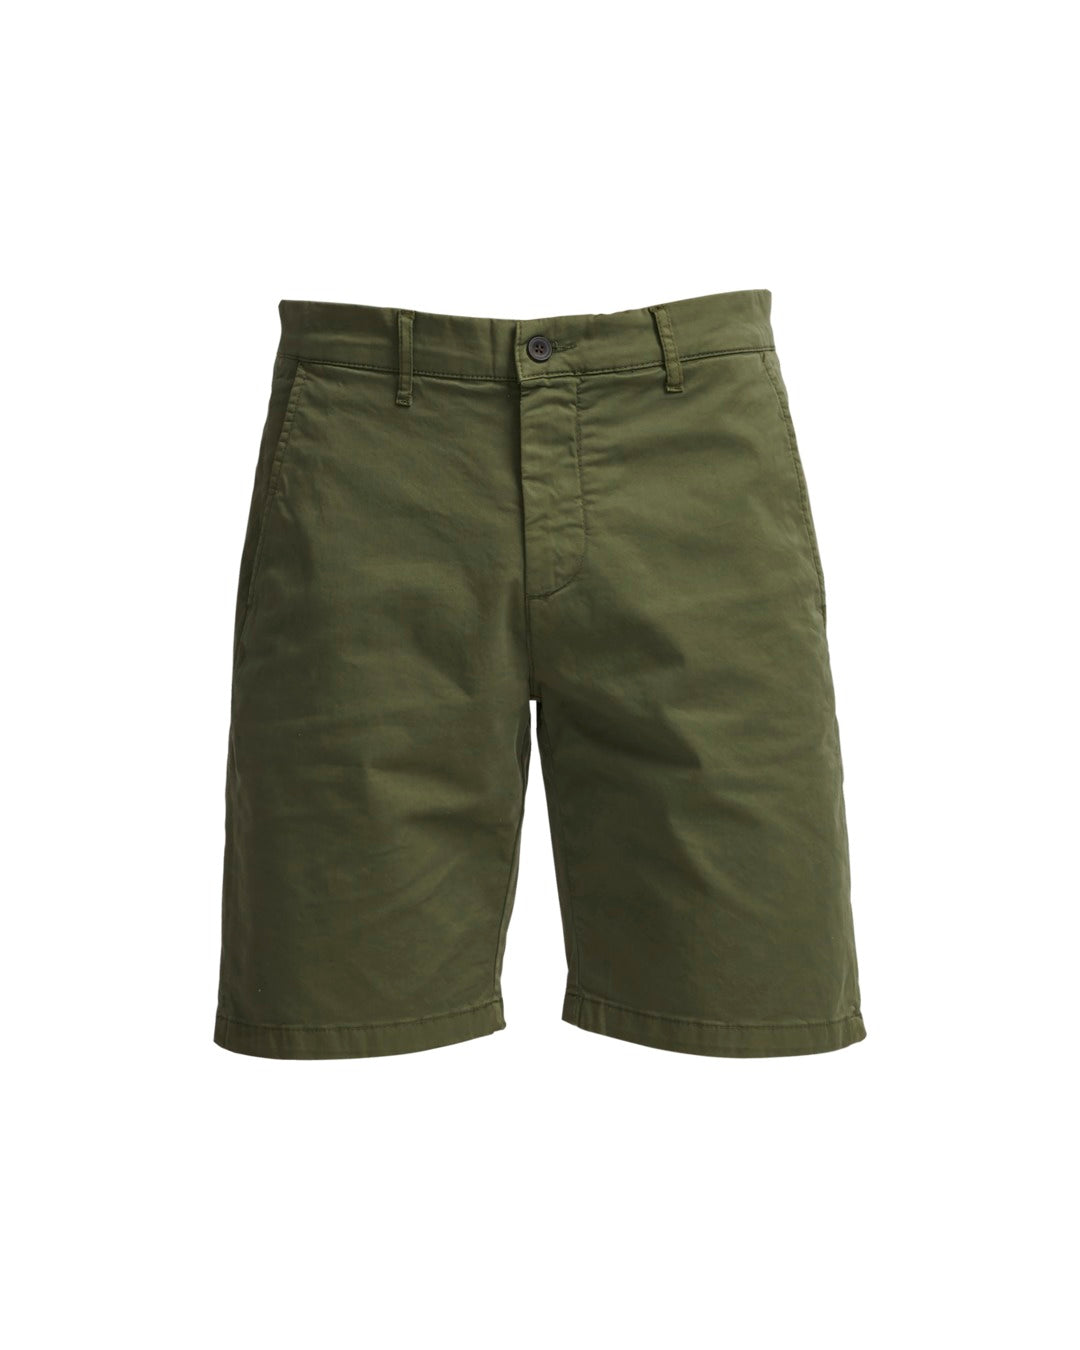 NN07 – CROWN SHORTS 1004 322